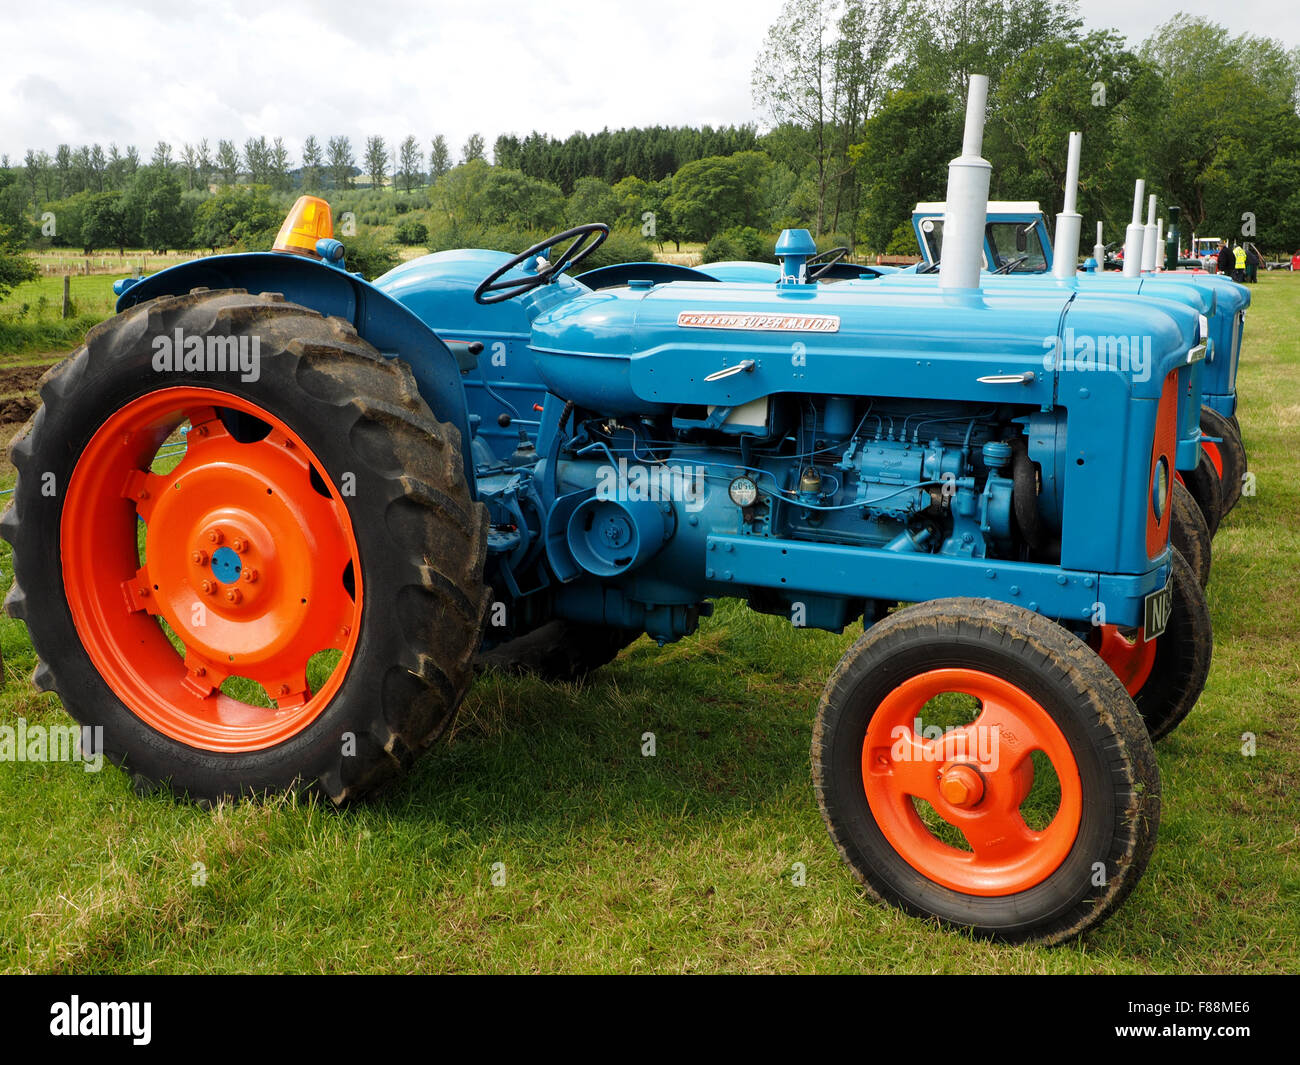 row of gleaming blue tractors with bright orange wheels in sunshine